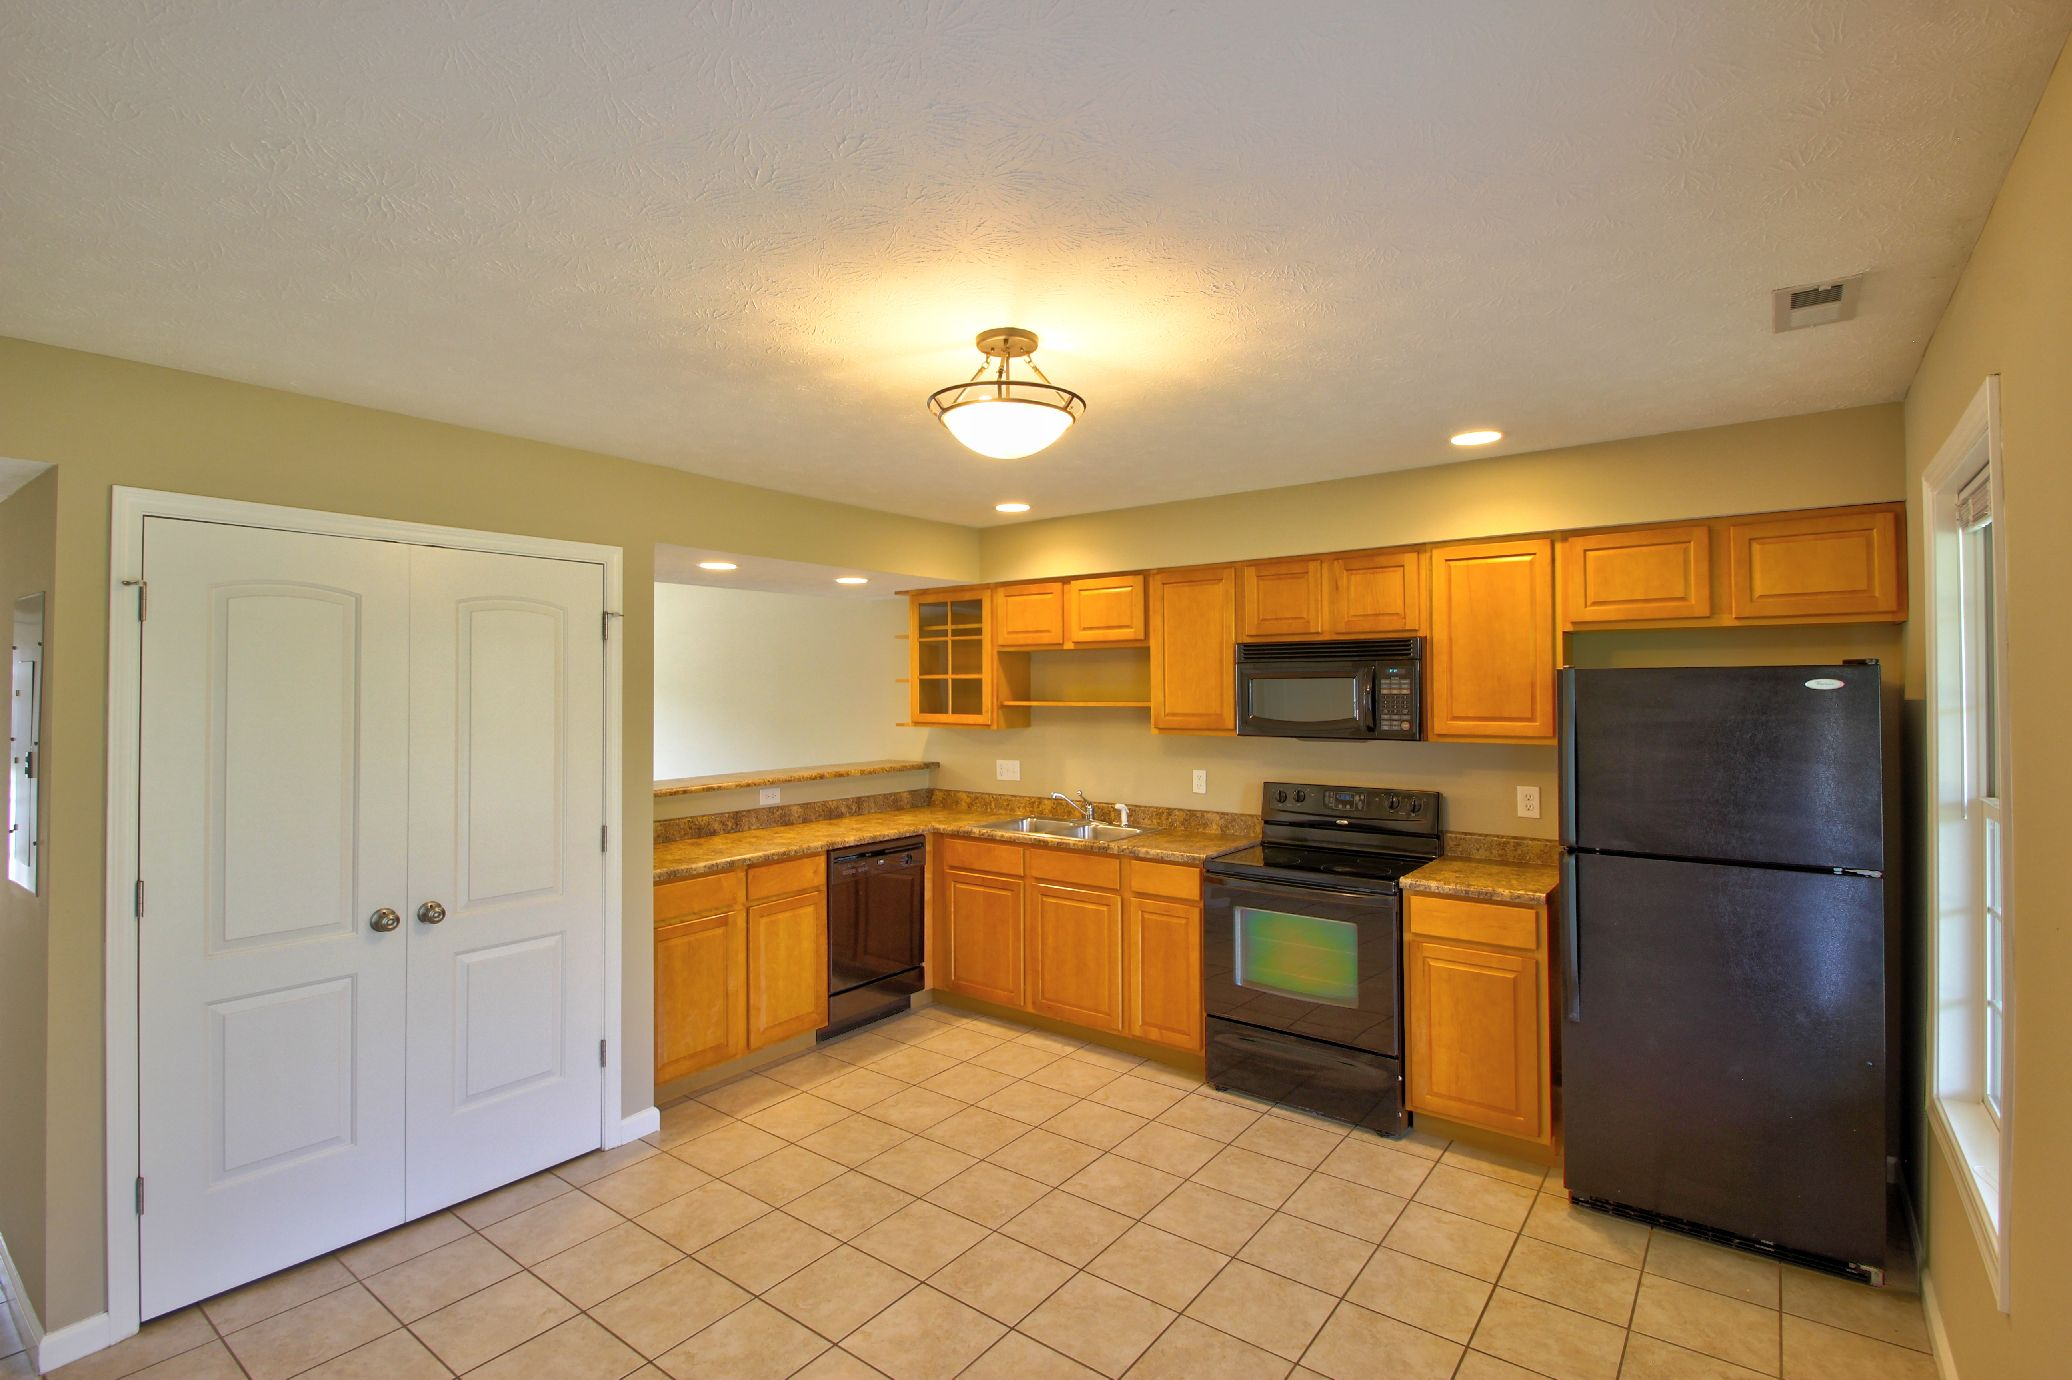 Idledale 2 Bedroom Townhome For Rent In Bloomington In